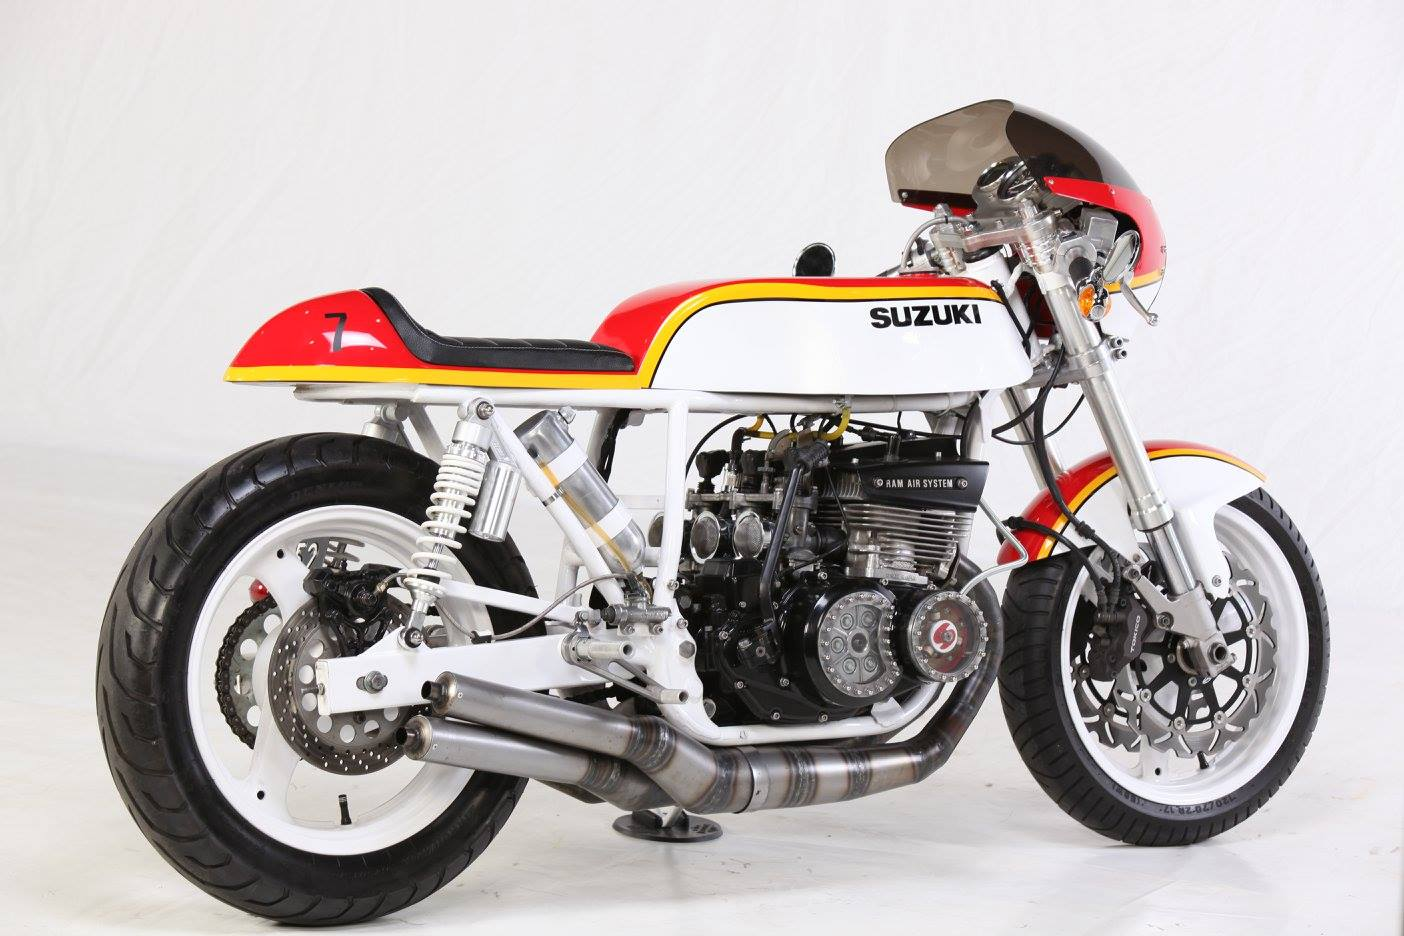 suzuki gt 550 caf racer suzuki rgv250 kevin schwantz lucky strike. Black Bedroom Furniture Sets. Home Design Ideas